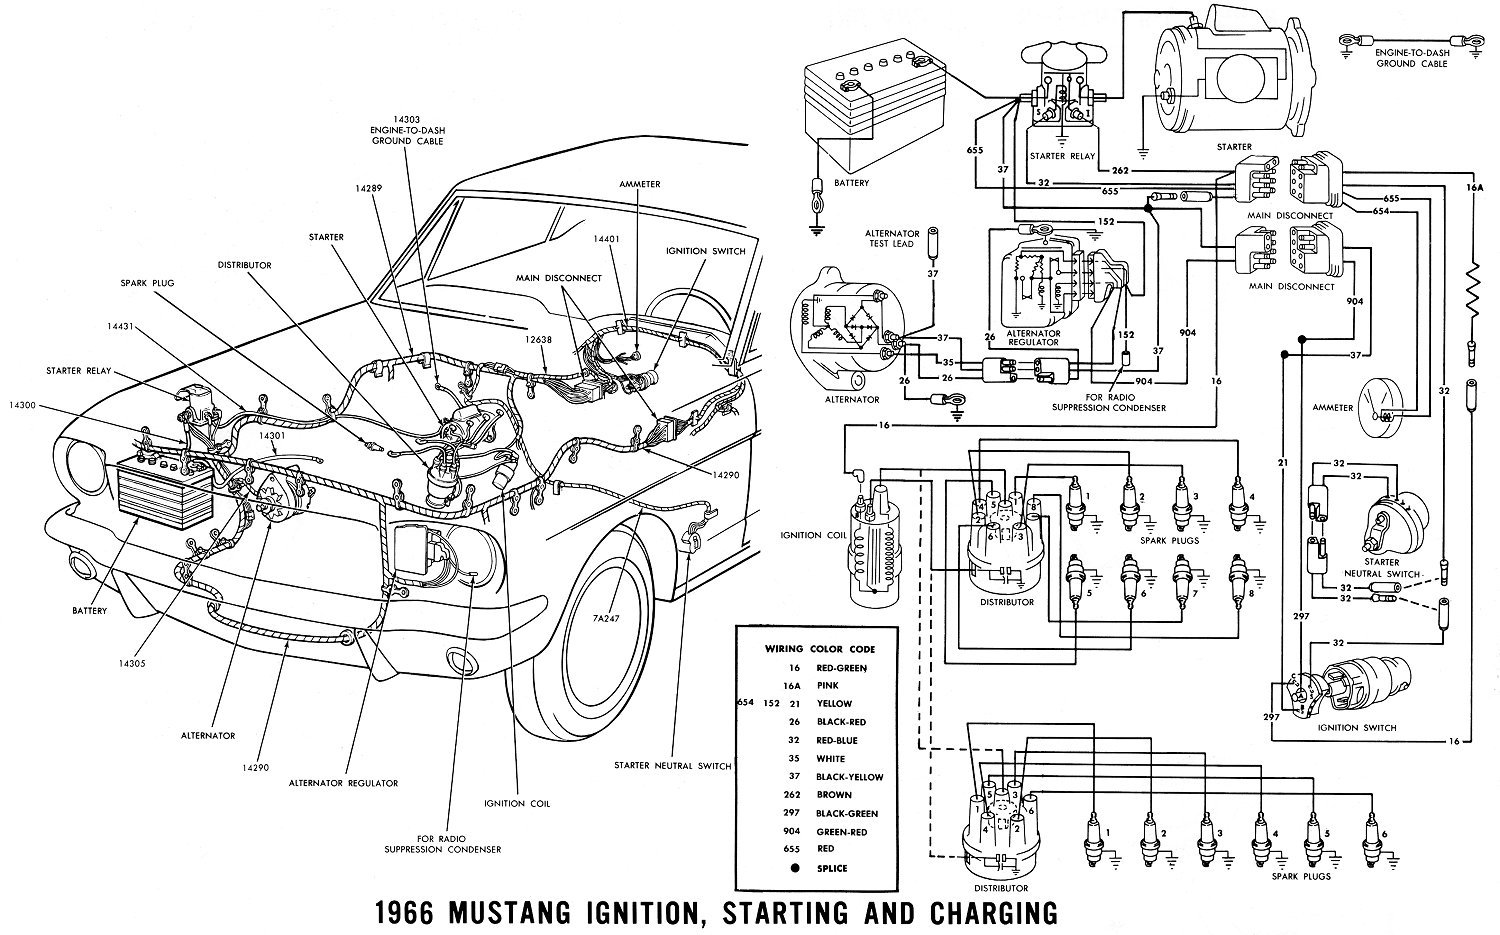 Marvelous Chevelle Wiring Diagram Photos Wiring Schematic further Pc in addition Dodge Charger And V  plete Electrical Wiring Diagram likewise Belvederegtxsatelliteroadrunnera further Electrical Issues The Present Chevrolet   Gmc Truck Of Gmc Sierra Crew Cab Wiring Diagram. on 1972 chevelle alternator wiring diagram